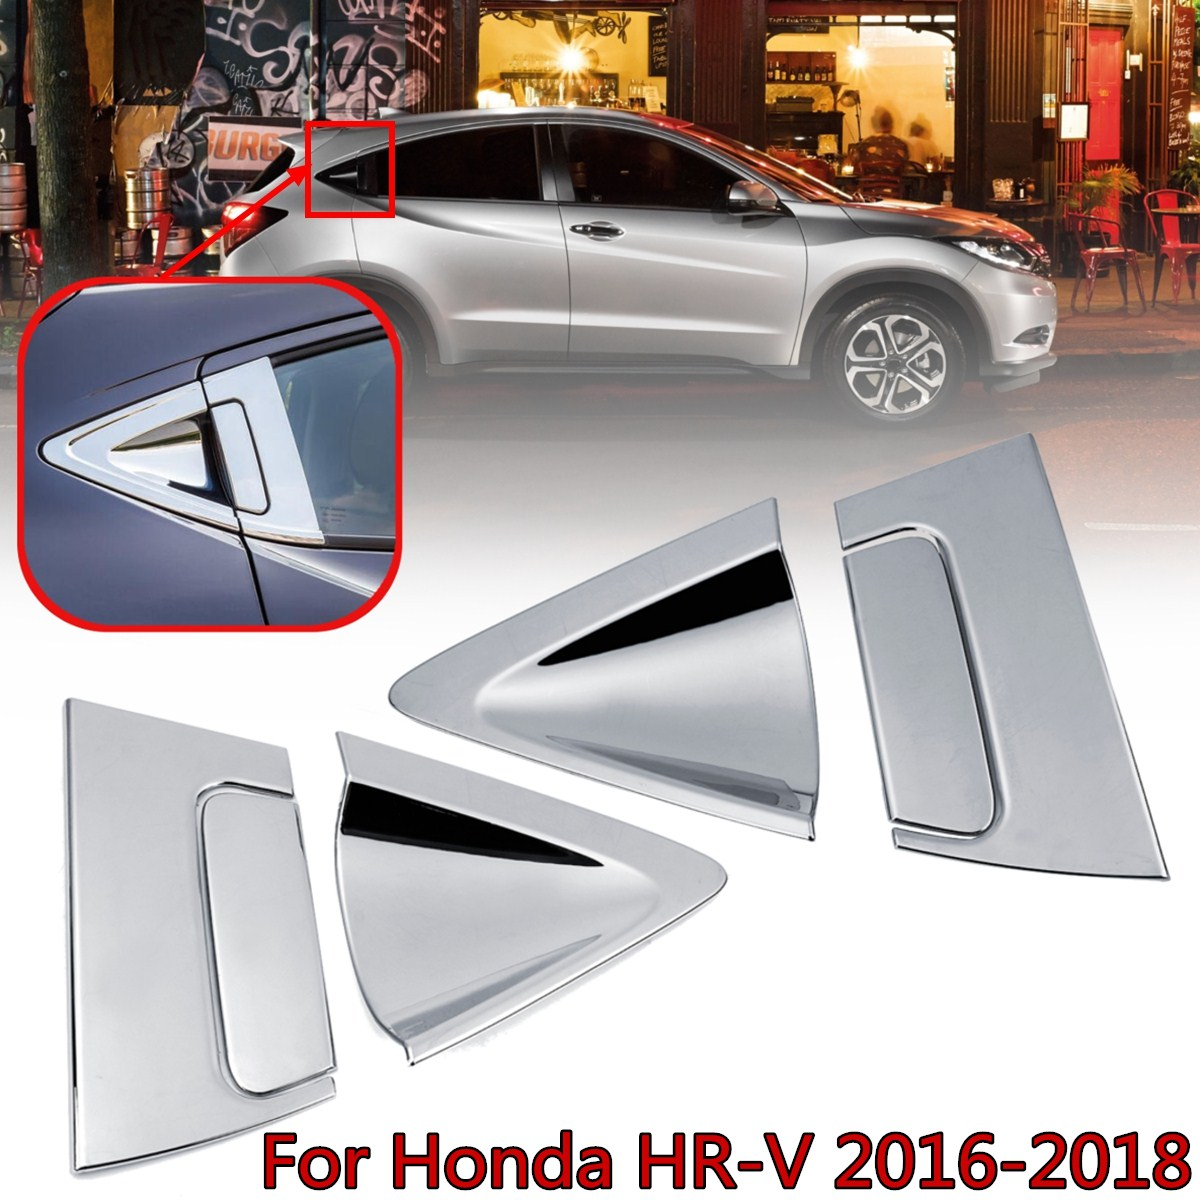 6pcs ABS Chrome/Carbon fiber Side Rear Door Handle Cover Bowl Cover Insert <font><b>Trim</b></font> For <font><b>Honda</b></font> for HR-V <font><b>HRV</b></font> 2016-2018 Car Accessories image